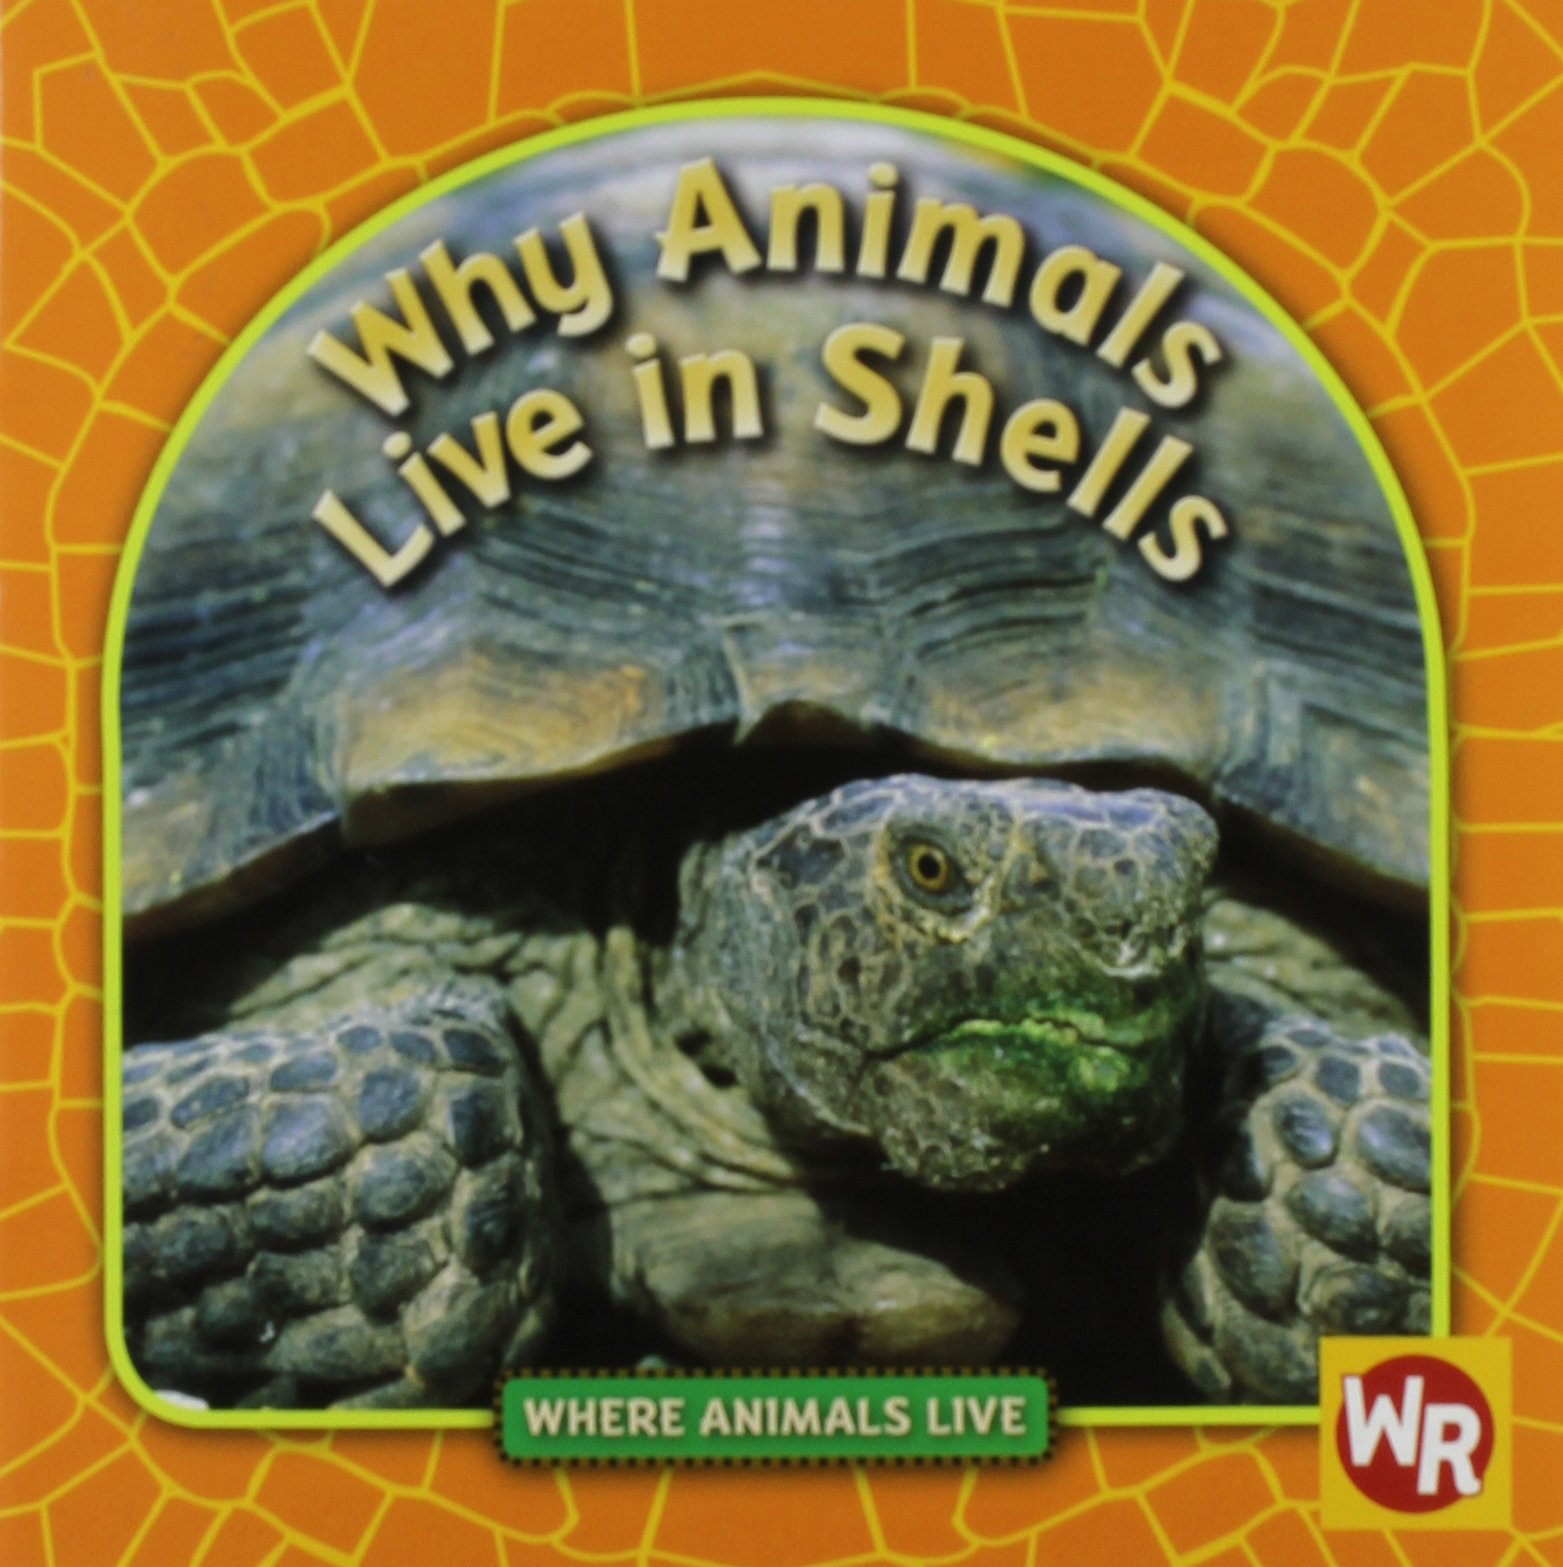 Why Animals Live in Shells (Where Animals Live) by Weekly Reader/Gareth Stevens Pub